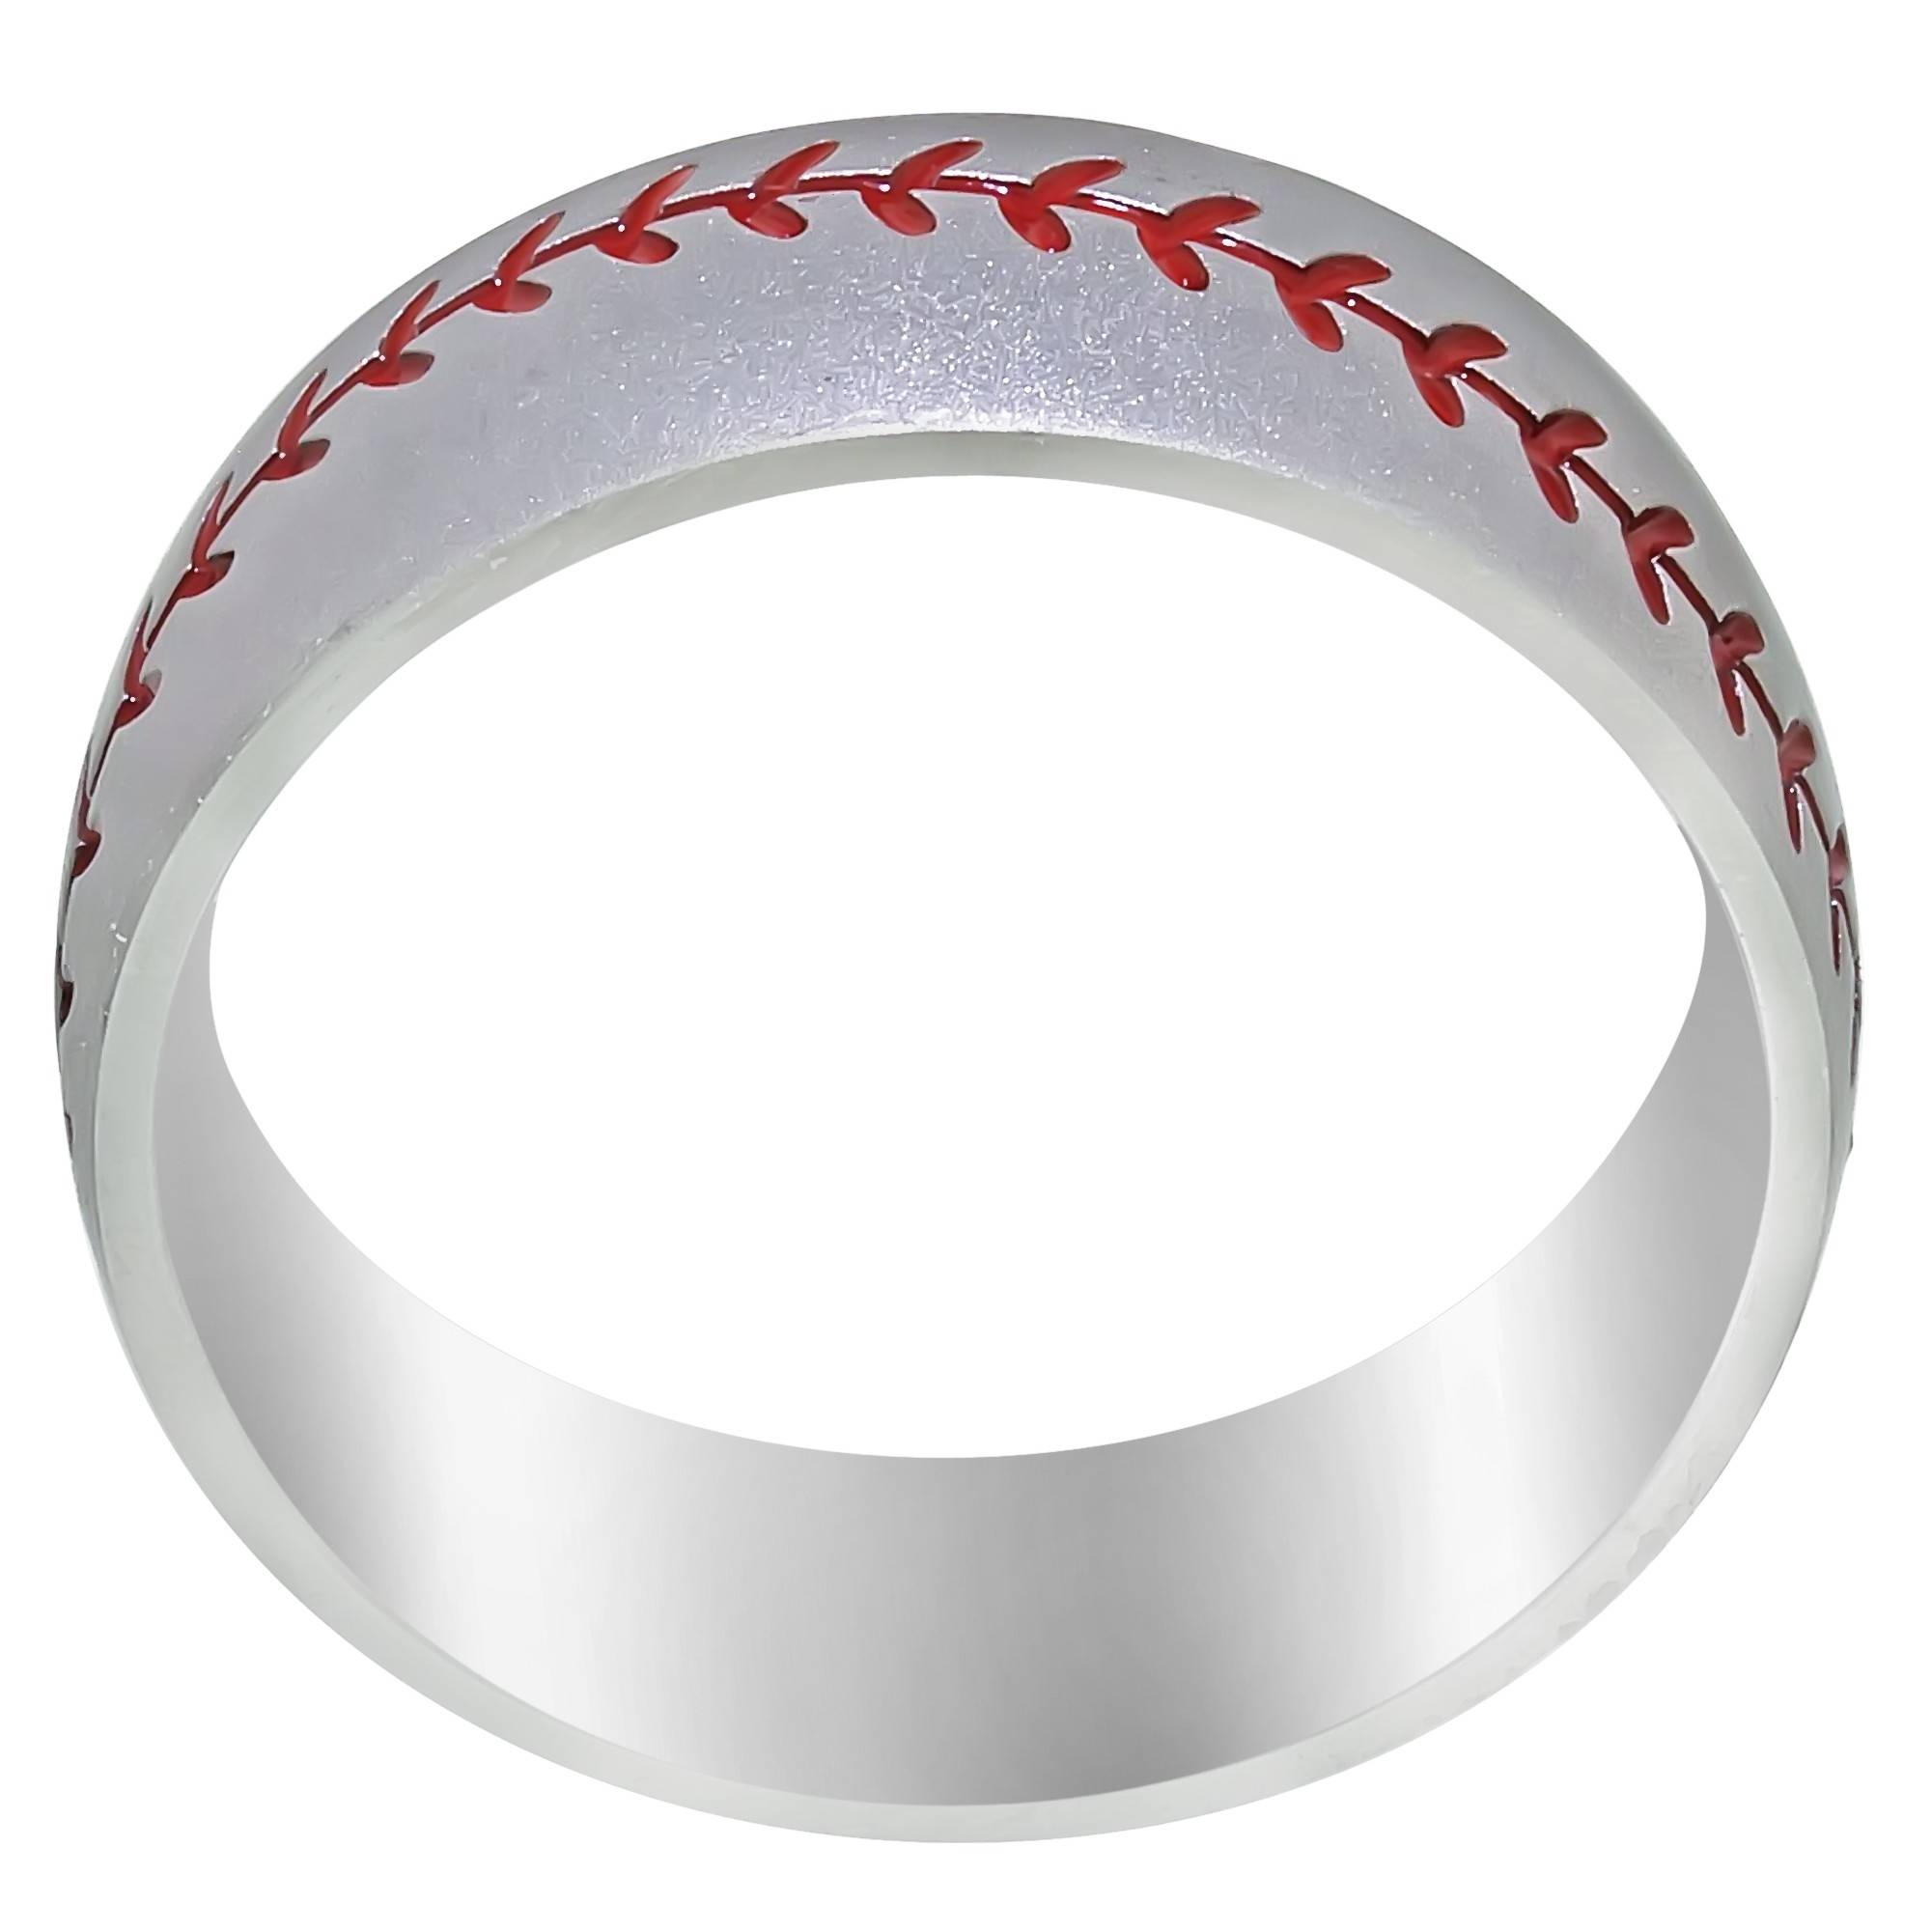 Mens Baseball Wedding Band In Cobalt Chrome (8Mm) Intended For Mens Baseball Wedding Bands (View 6 of 15)